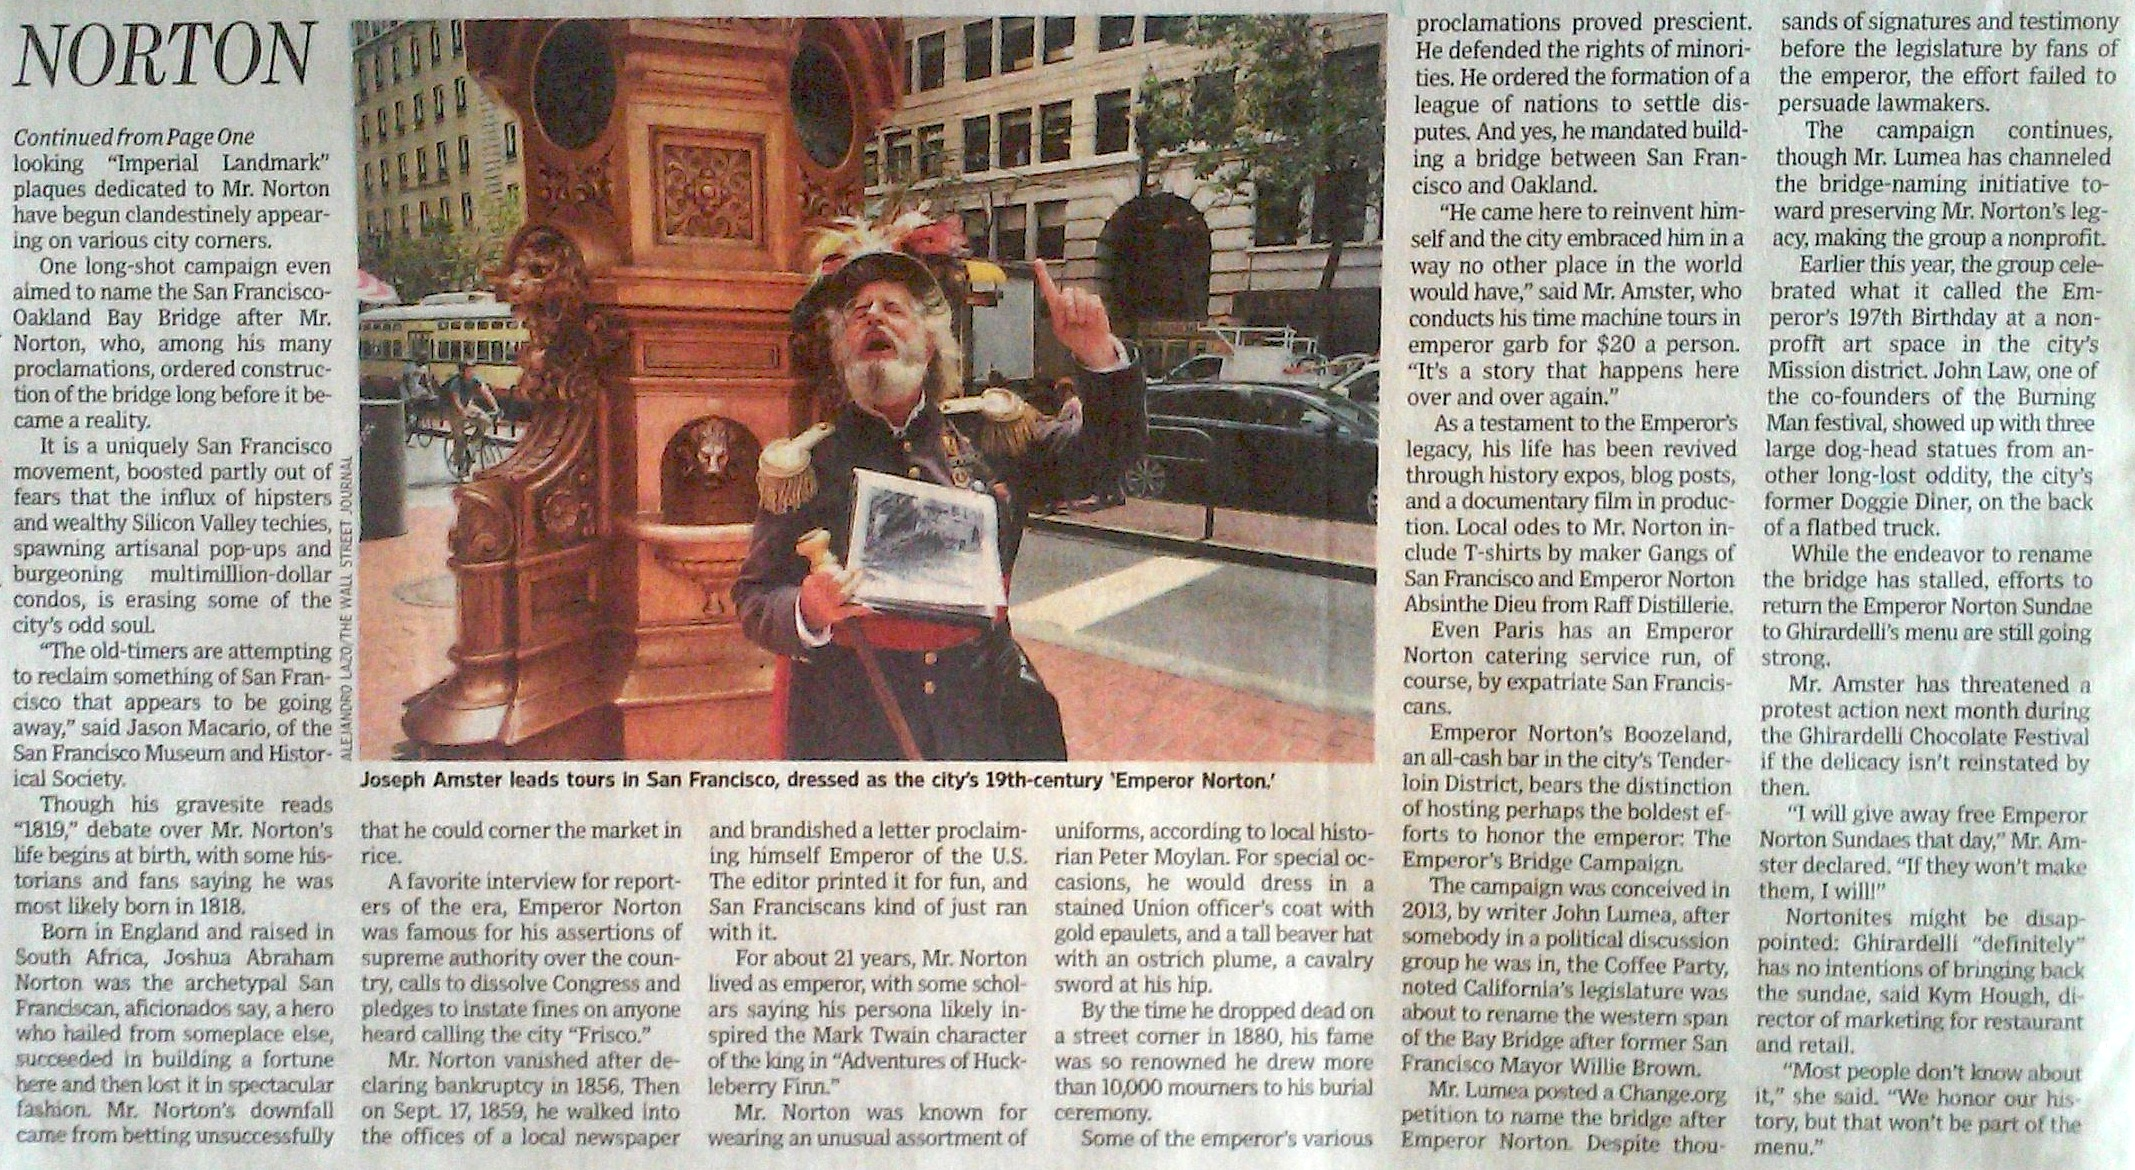 """Two images above: Alejandro Lazo and Daniel Huang, """"In San Francisco, Subjects Still Long for Ersatz Emperor of Yore,""""  Wall Street Journal , 13 August 2015, pp. A1 and A8.  Copyright © 2015 Dow Jones & Company, Inc."""